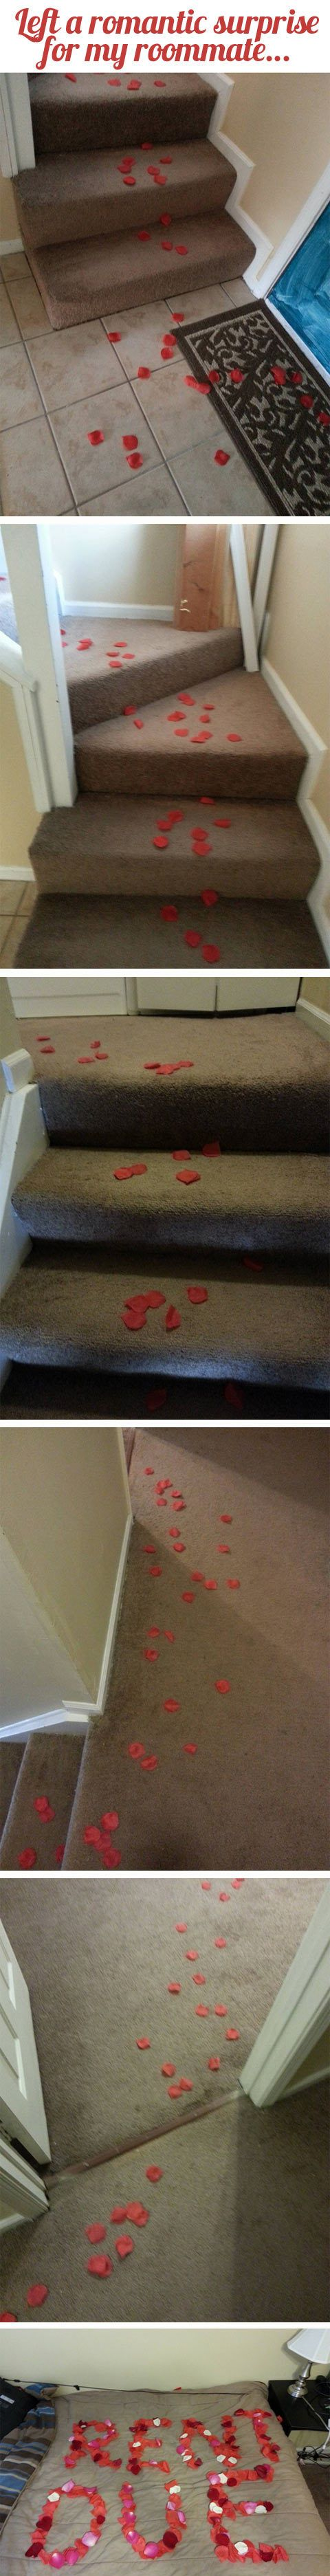 I'm going to remember this one any future roommates...romantic!